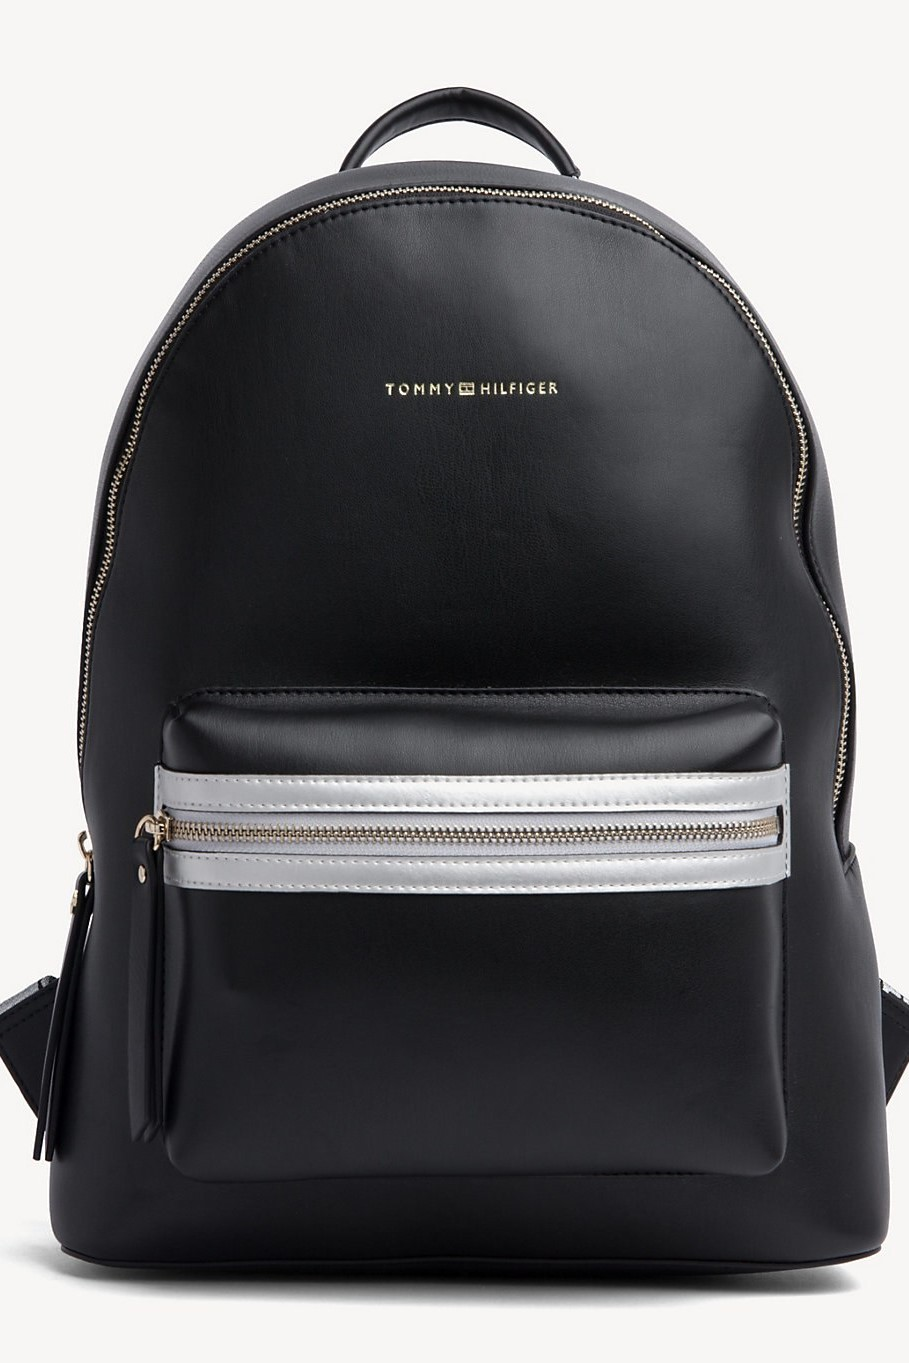 a6b53184dc Tommy Hilfiger fekete hátizsák Iconic Tommy Backpack Black - Női ...